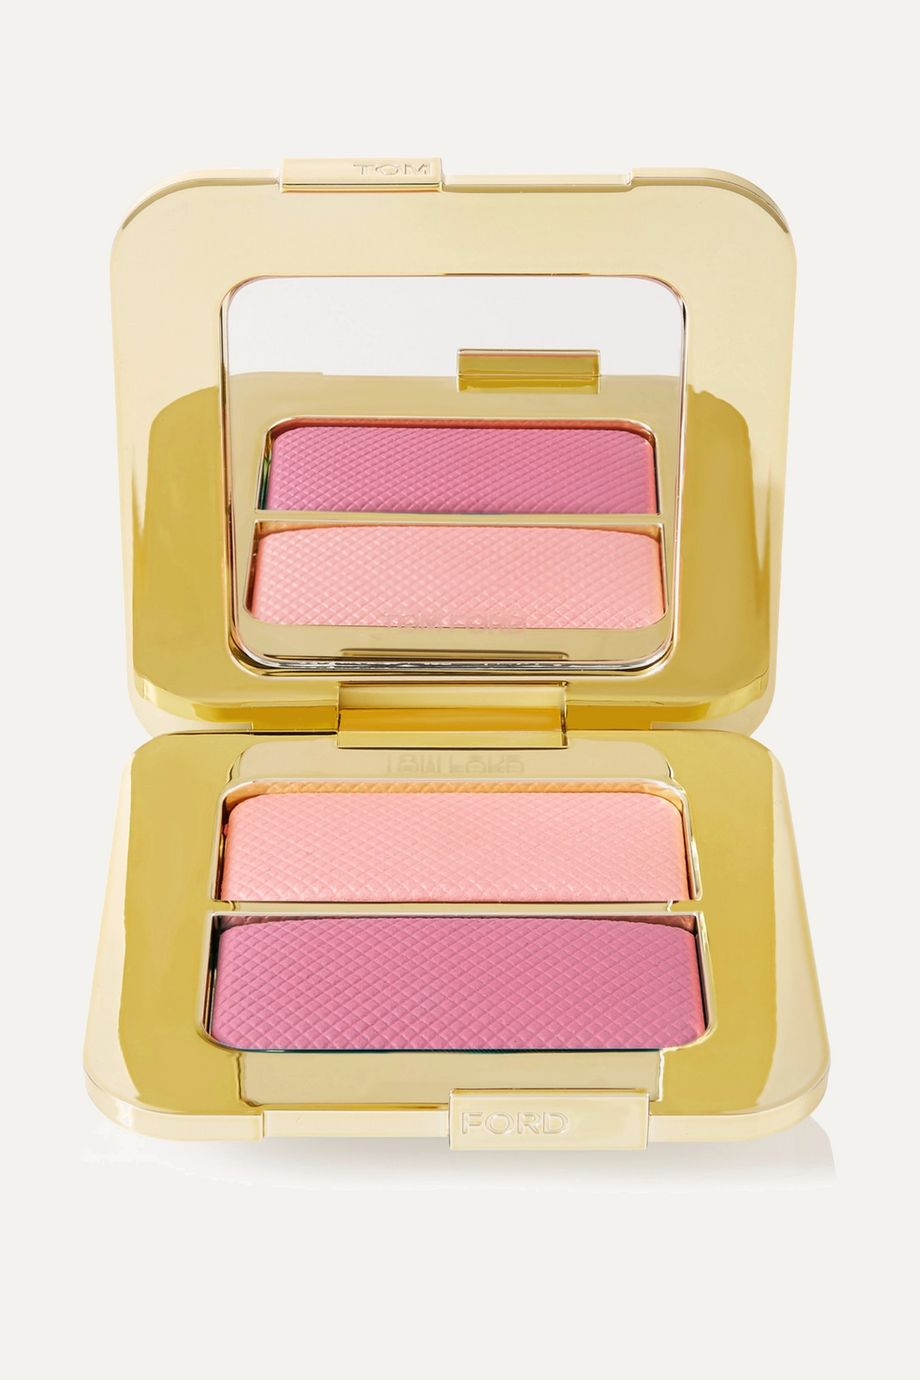 TOM FORD BEAUTY Sheer Cheek Duo - Lavender Lure